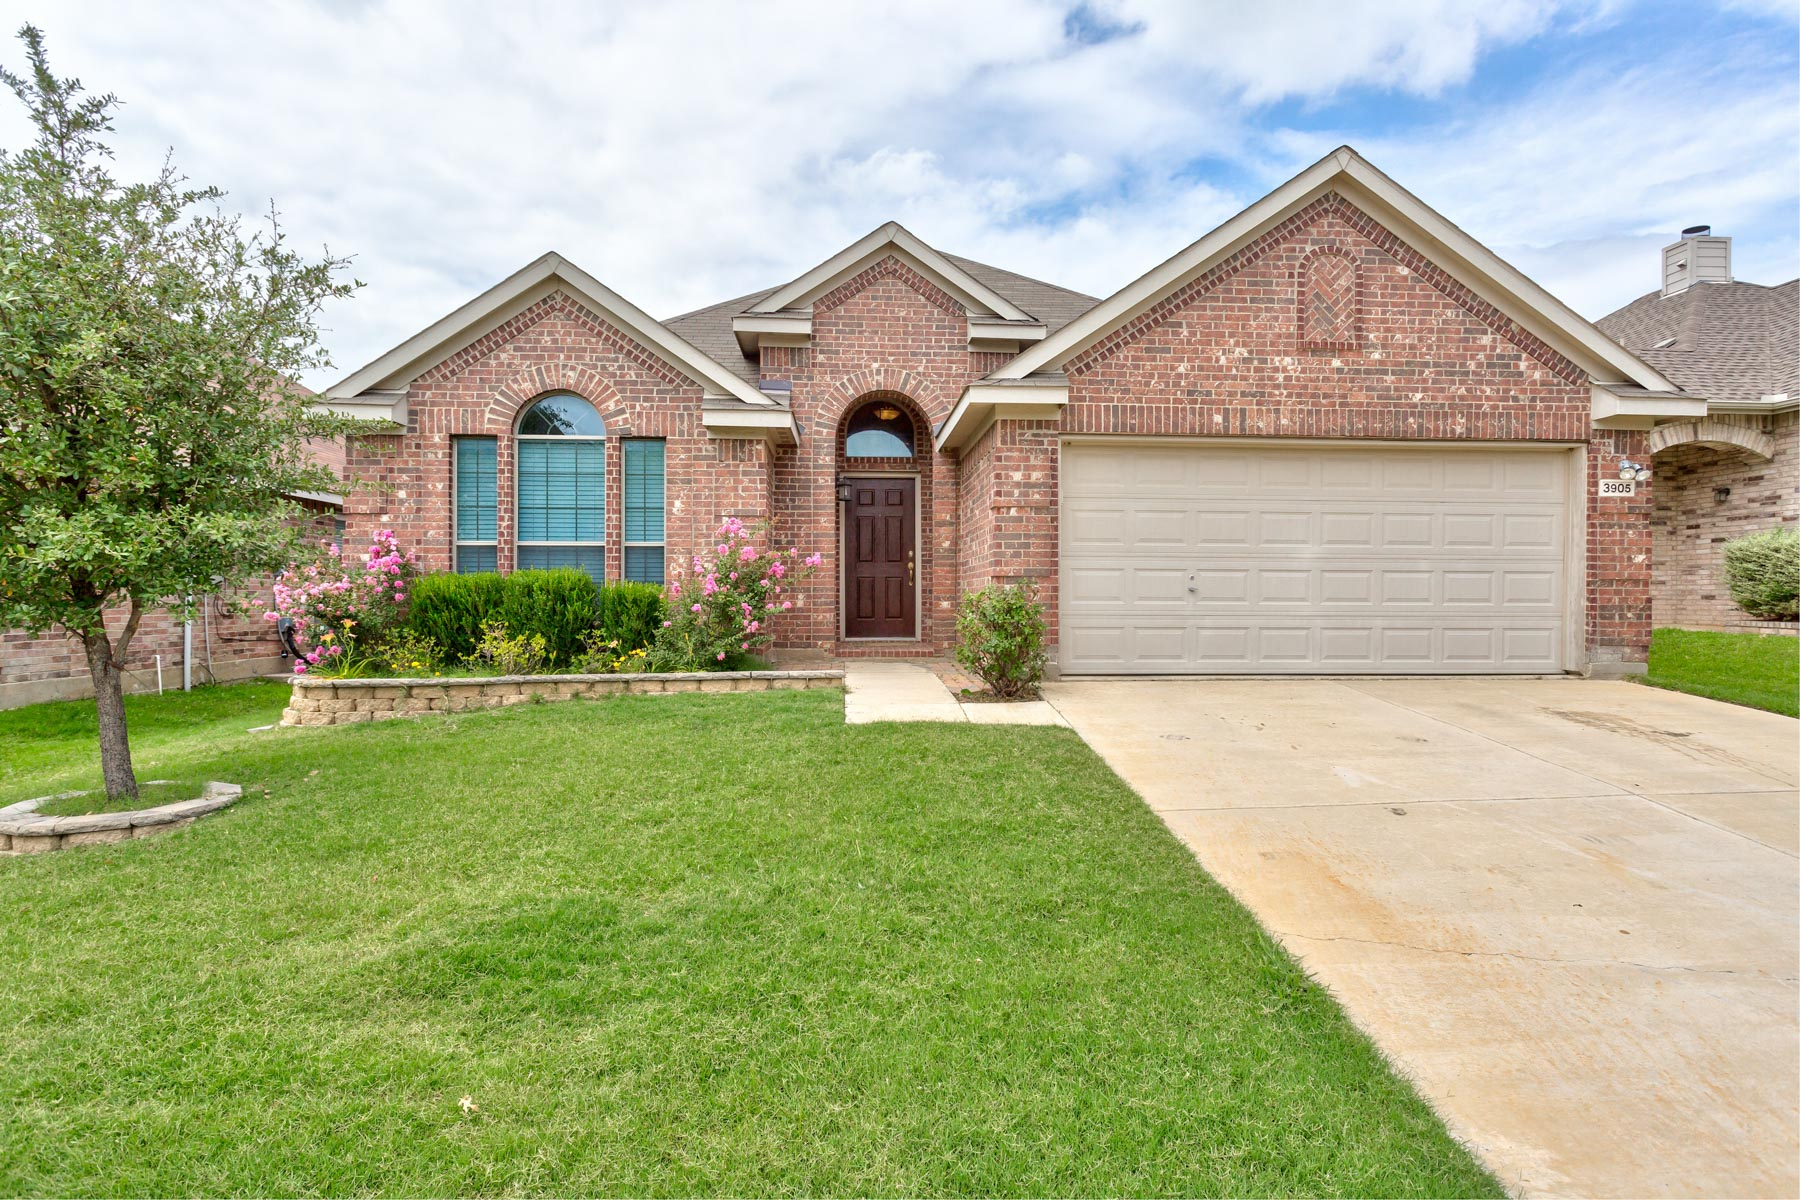 Single Family Home for Sale at Fort Worth Ranches East Addition 3905 Long Hollow Rd Roanoke, Texas 76262 United States